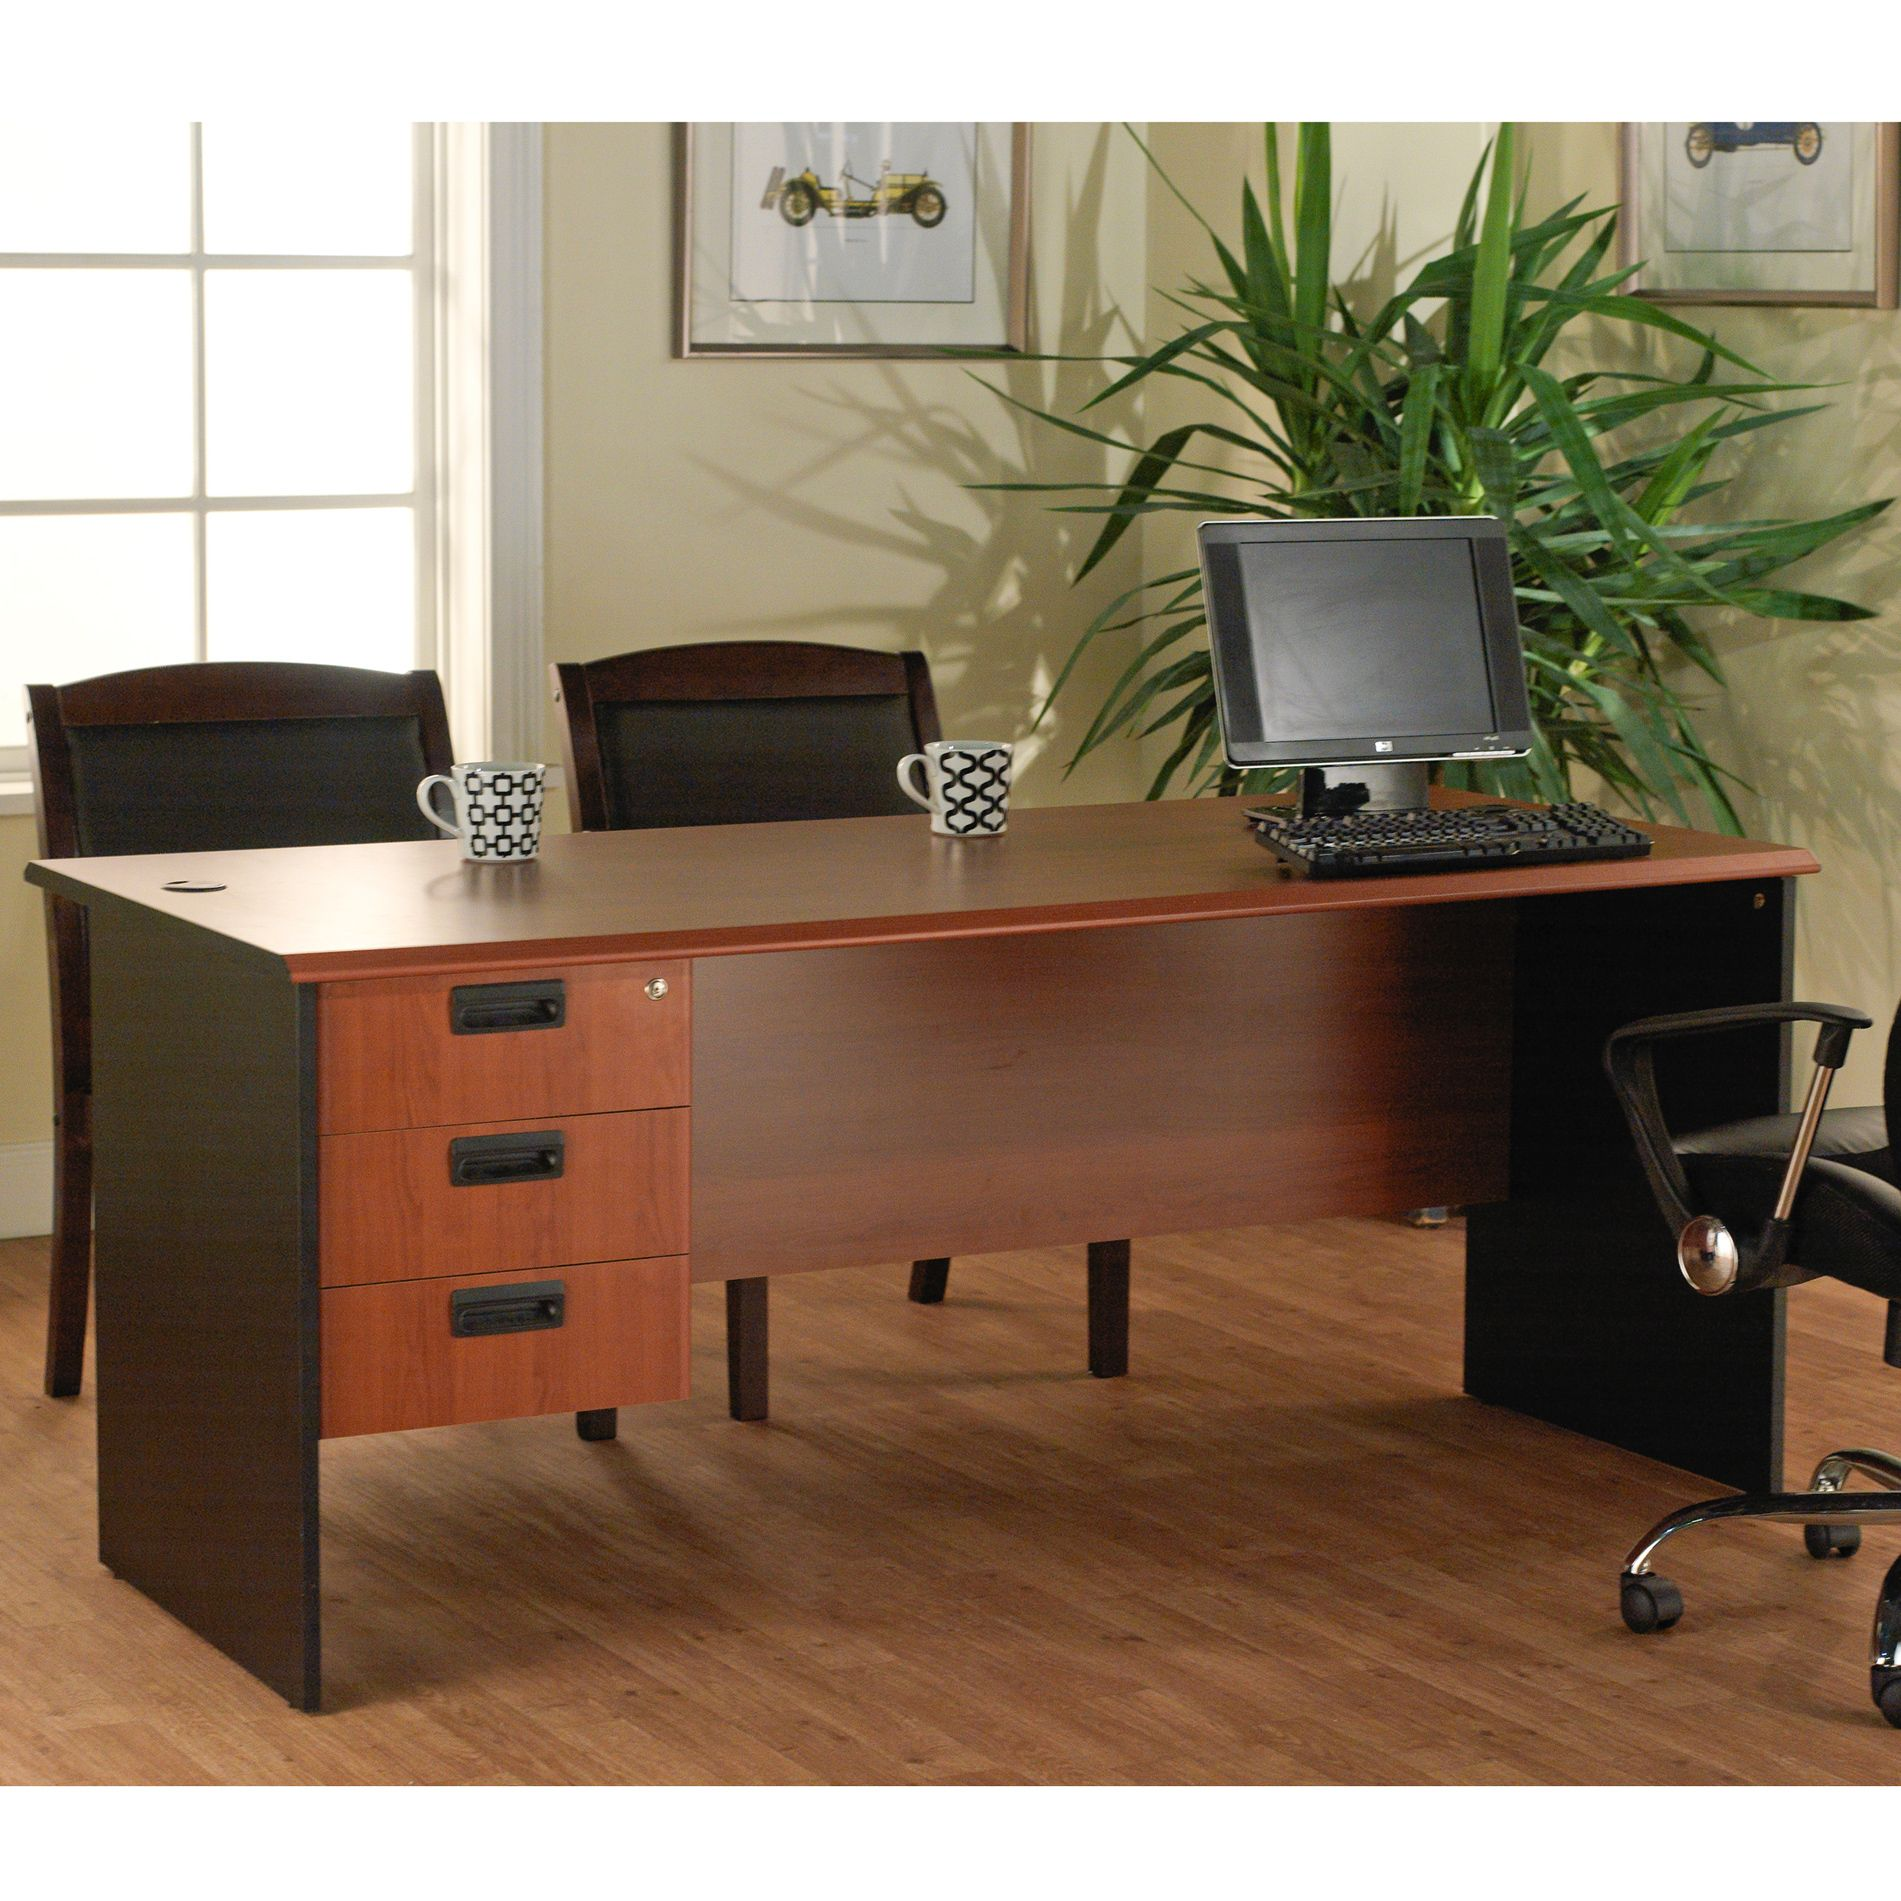 Lee and Smith Office Straight Desk with 3 Drawers 206